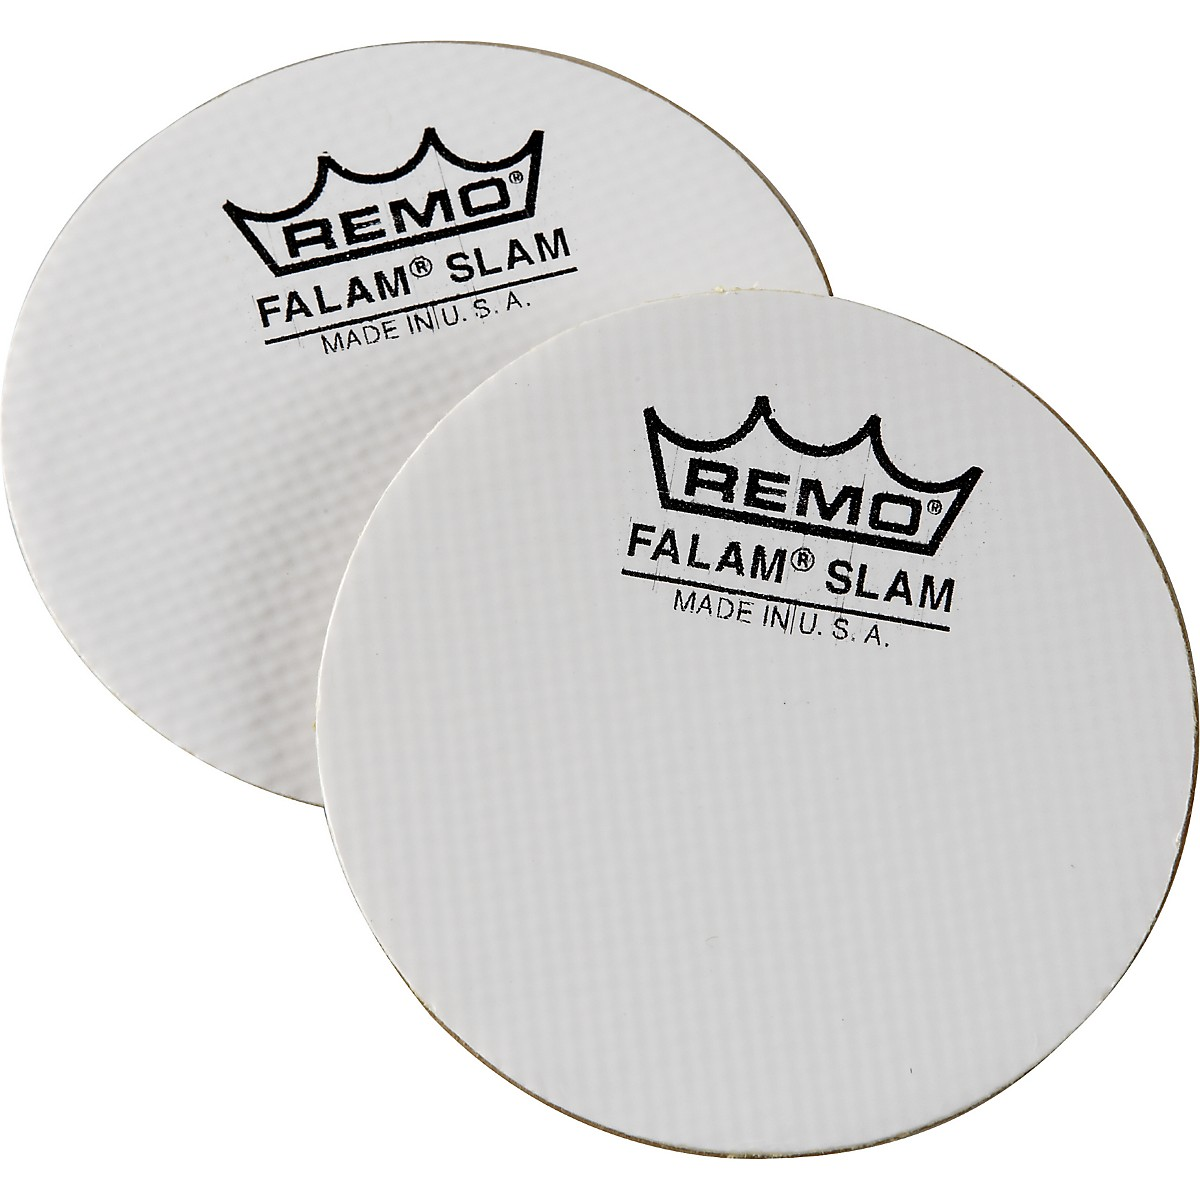 Remo Falam Slam Pad Kevlar Bass Drum Patch (2 Pack)